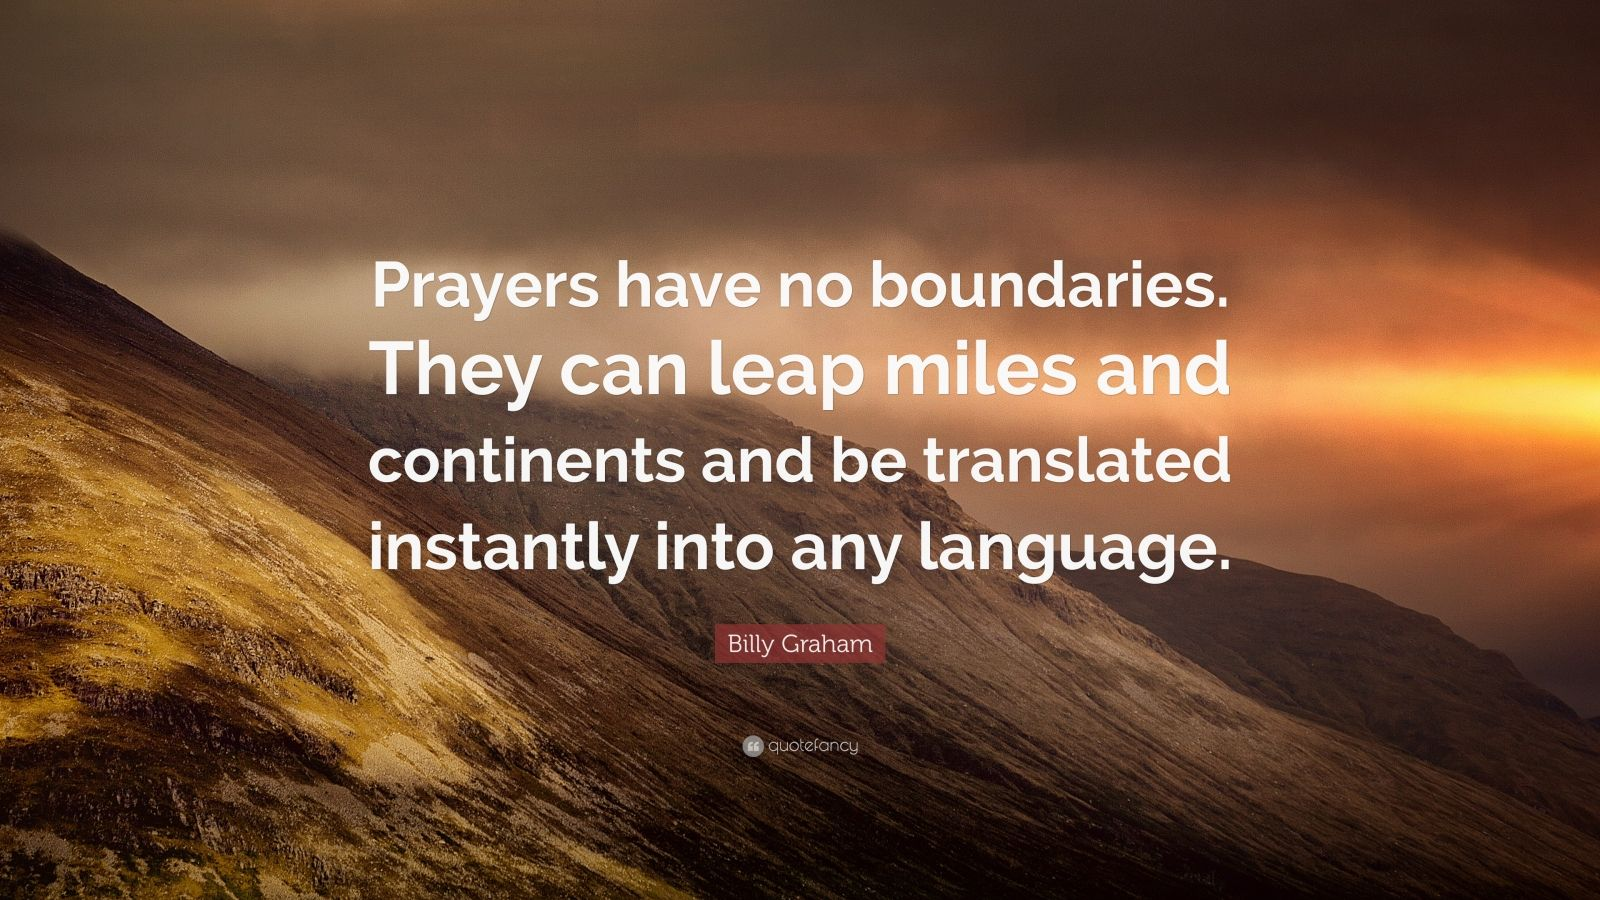 """Billy Graham Quote: """"Prayers have no boundaries. They can leap miles and continents and be translated instantly into any language."""""""